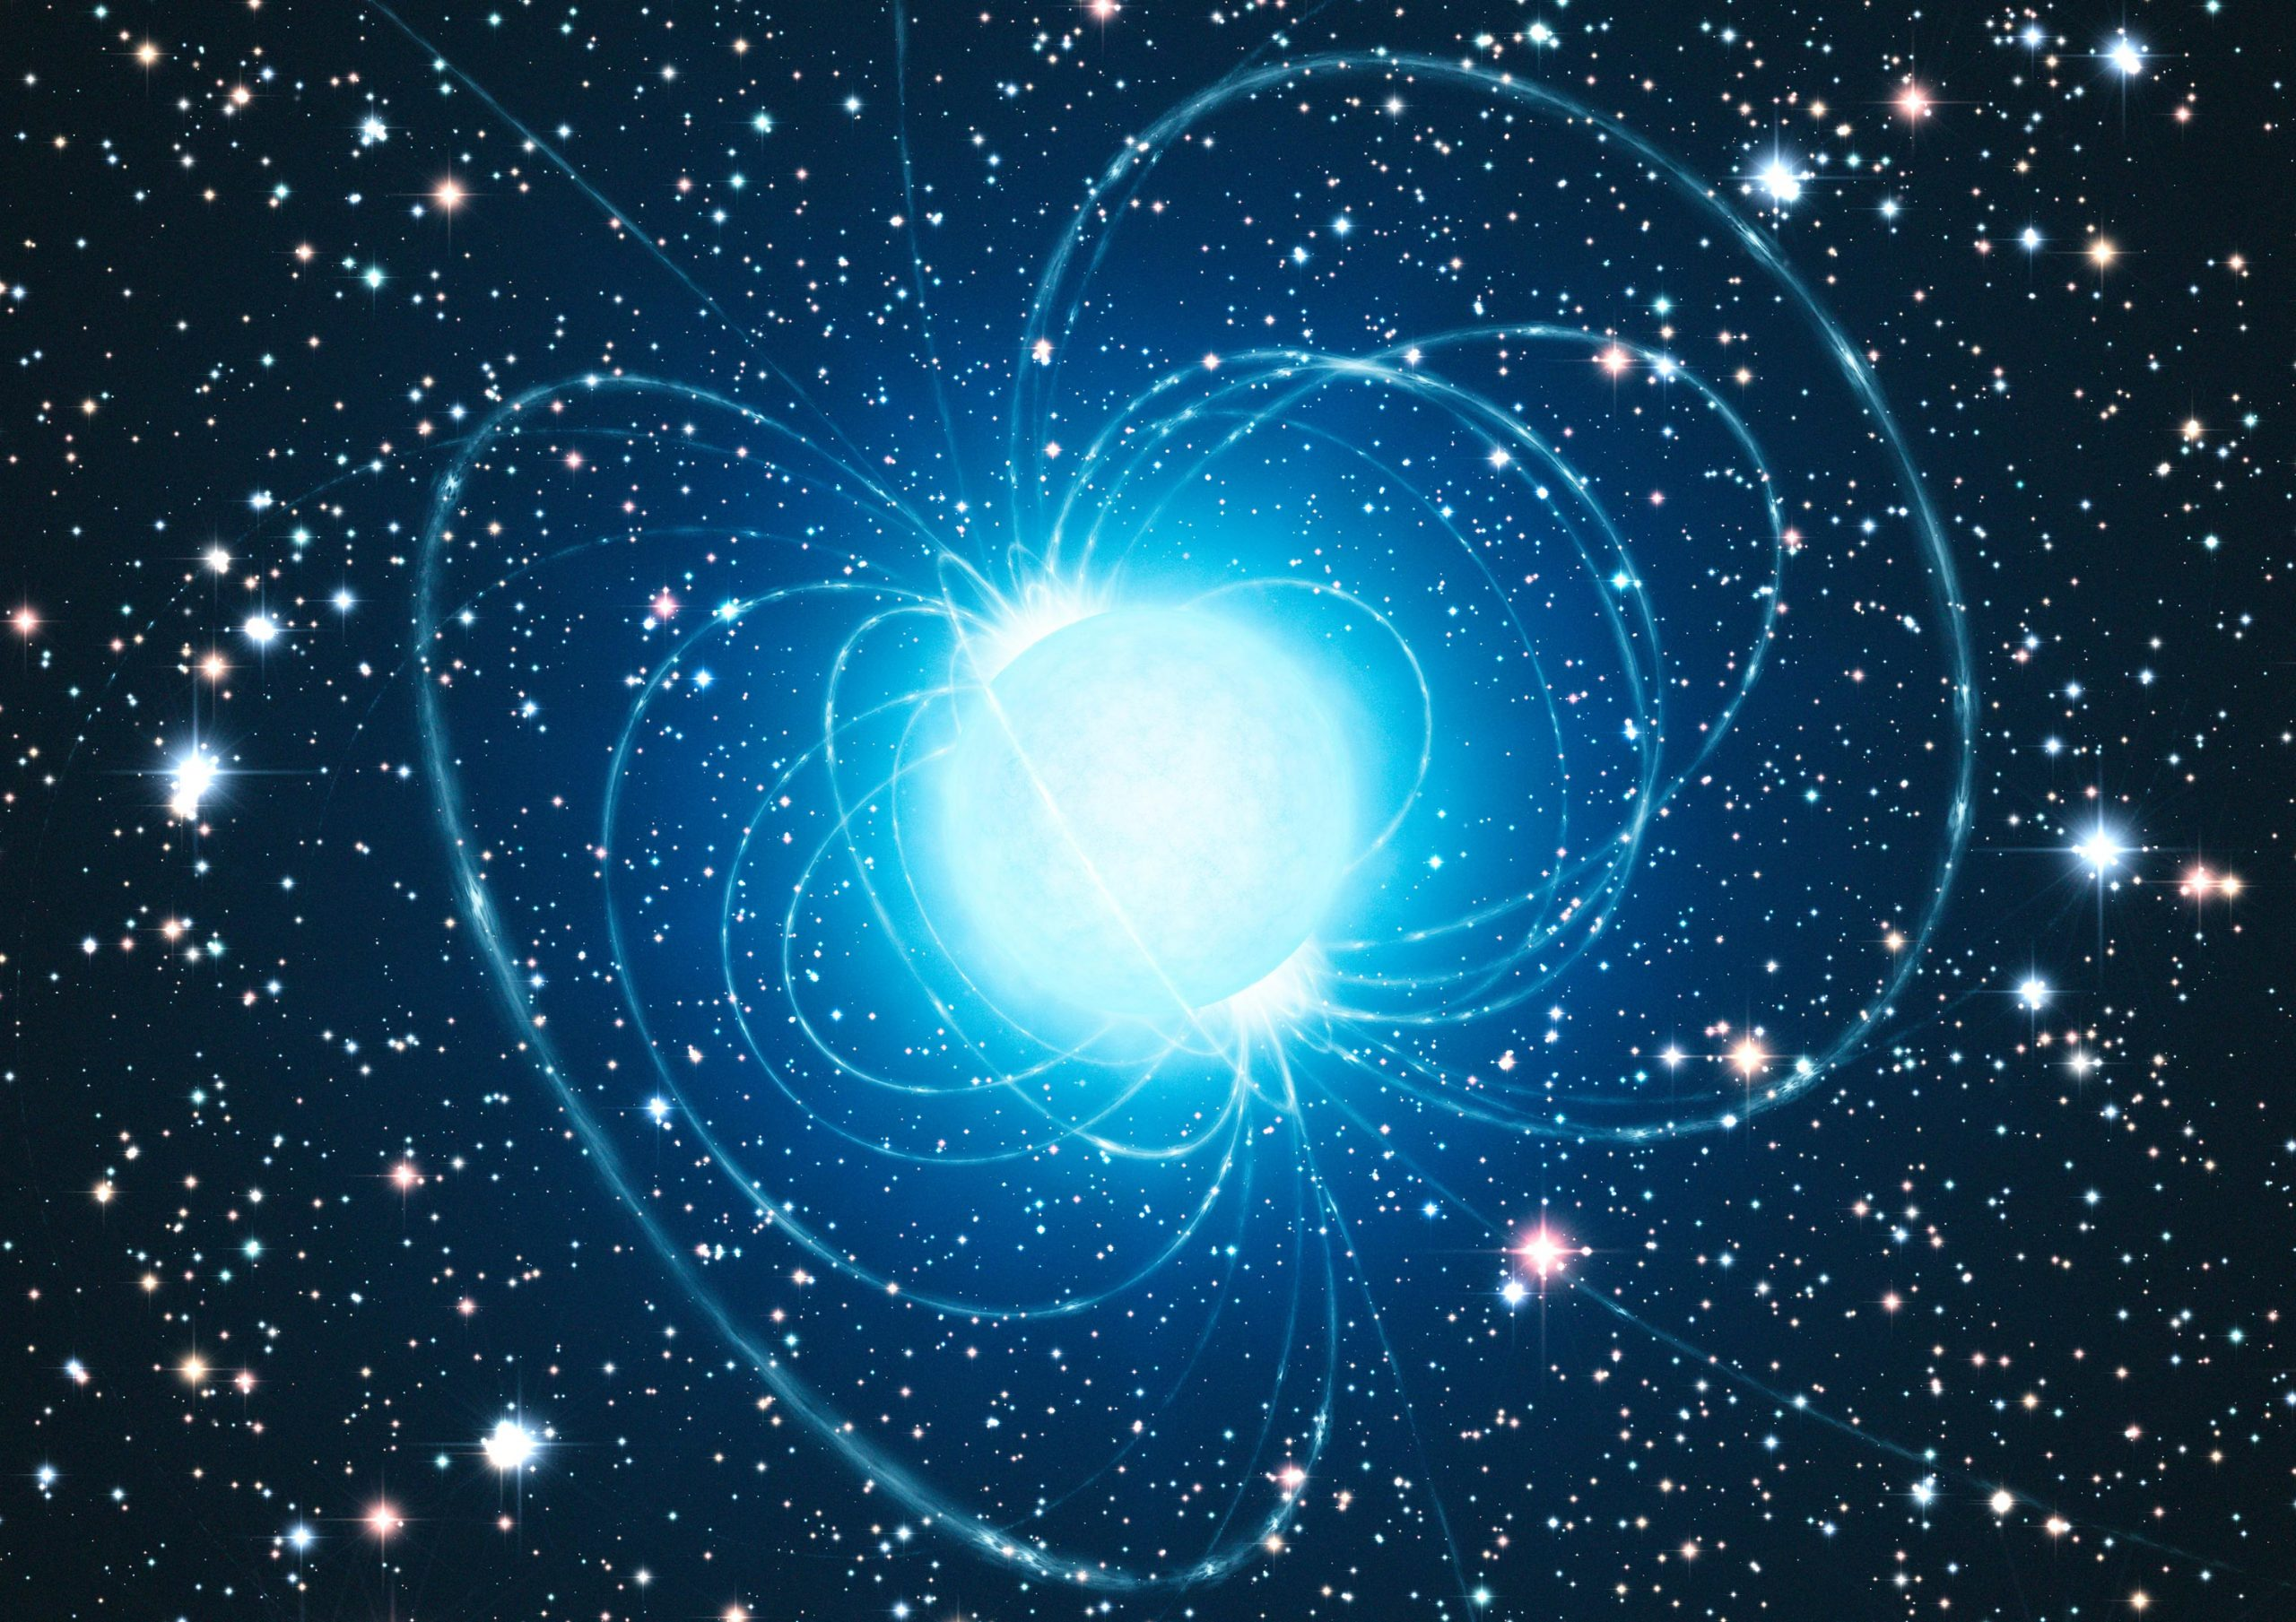 Chandra Studies Extraordinary Magnetar: Fastest Spinning and Possibly the Youngest Magnetar Known